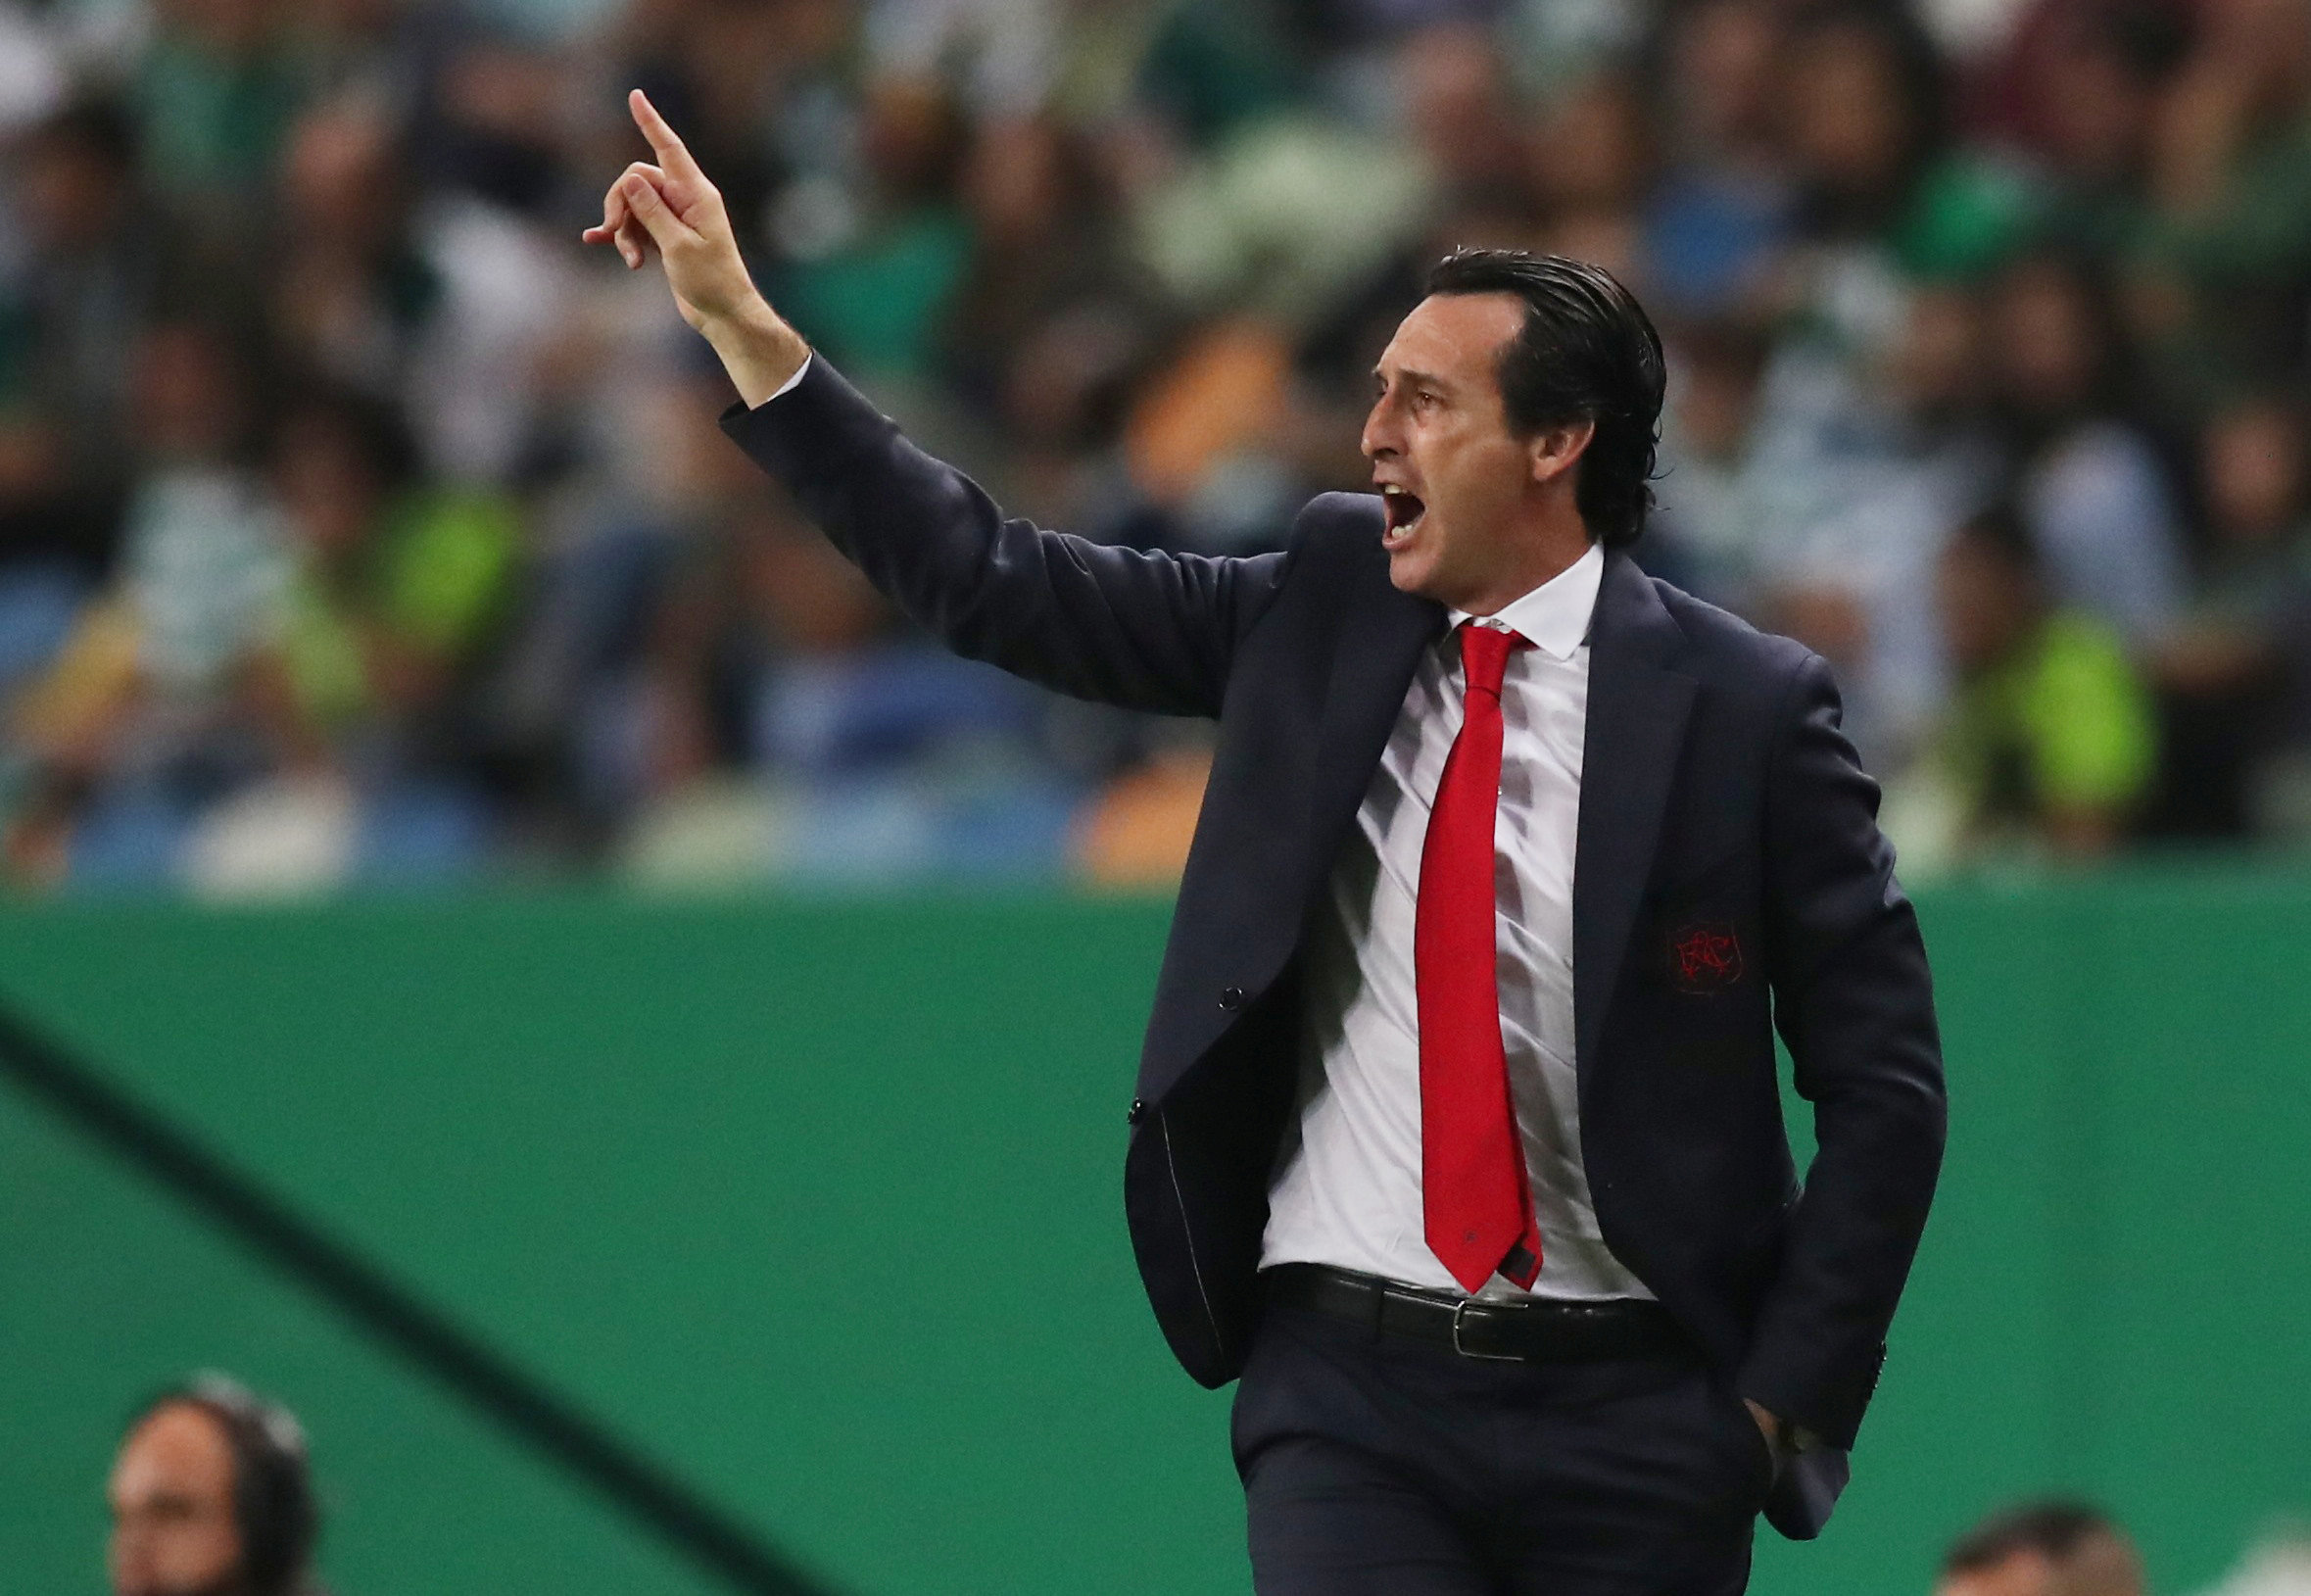 FILE: Soccer Football - Europa League - Group Stage - Group E - Sporting CP v Arsenal - Estadio Jose Alvalade, Lisbon, Portugal - October 25, 2018  Arsenal manager Unai Emery during the match.   Action Images via Reuters